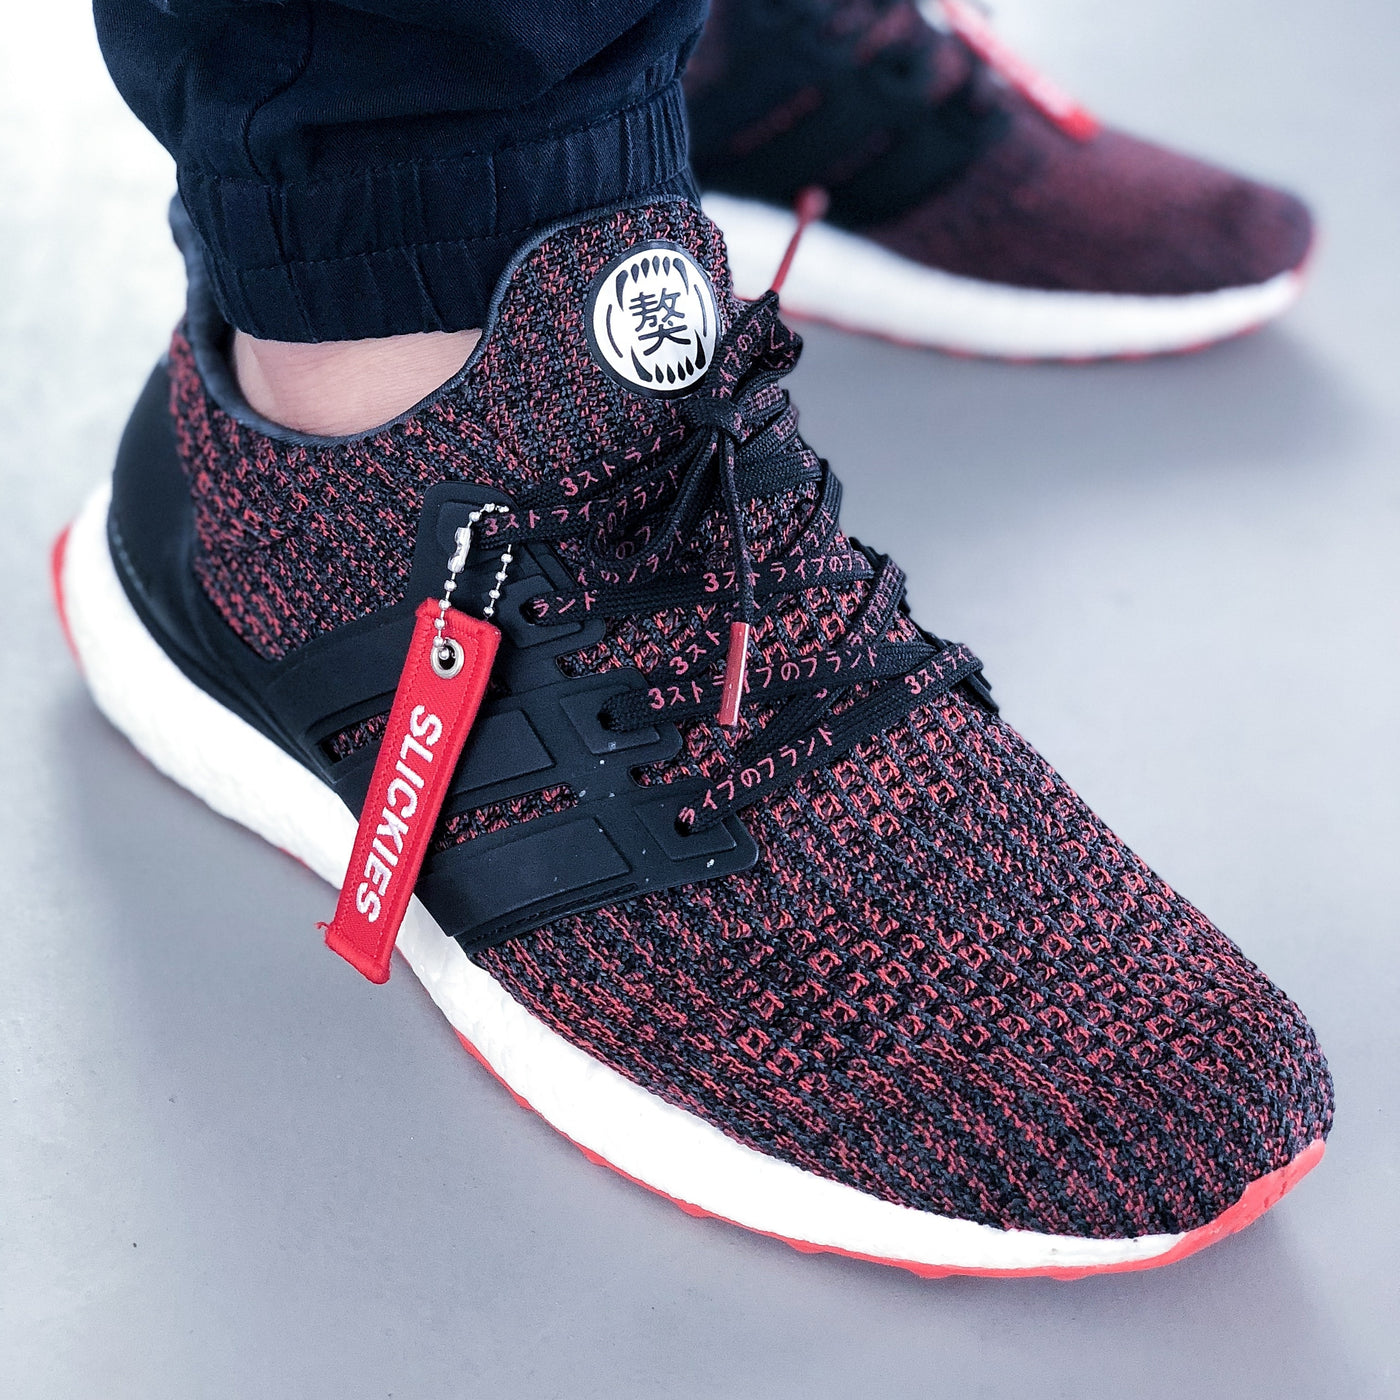 6ff7bdcdd2b Slickieslaces - Shoelaces for Your Ultra Boost / NMD Sneakers